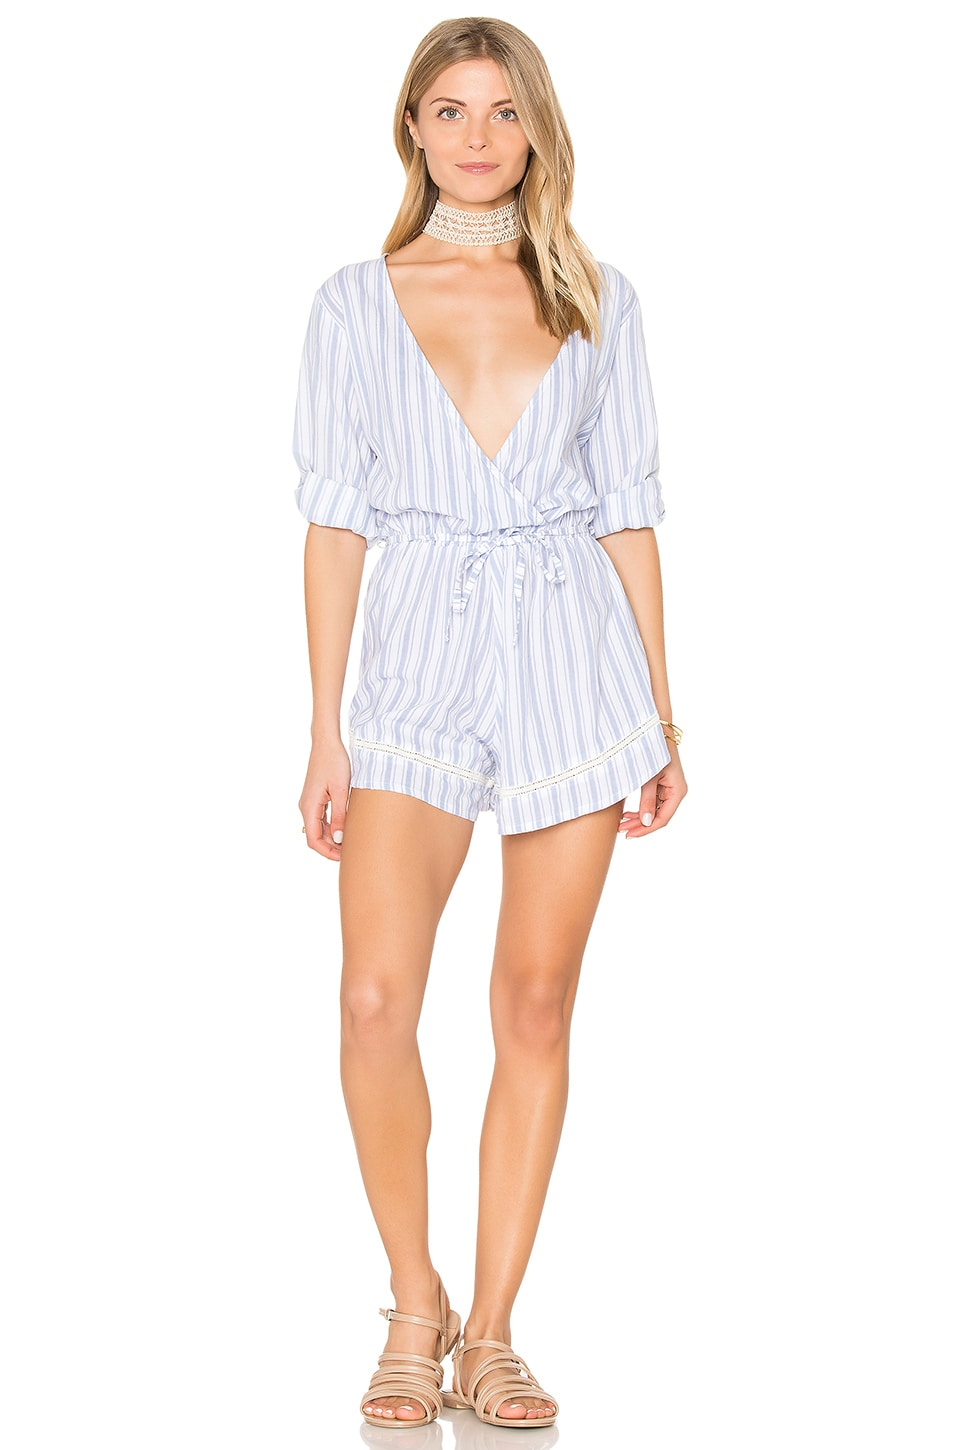 Sunkissed Playsuit by FAITHFULL THE BRAND